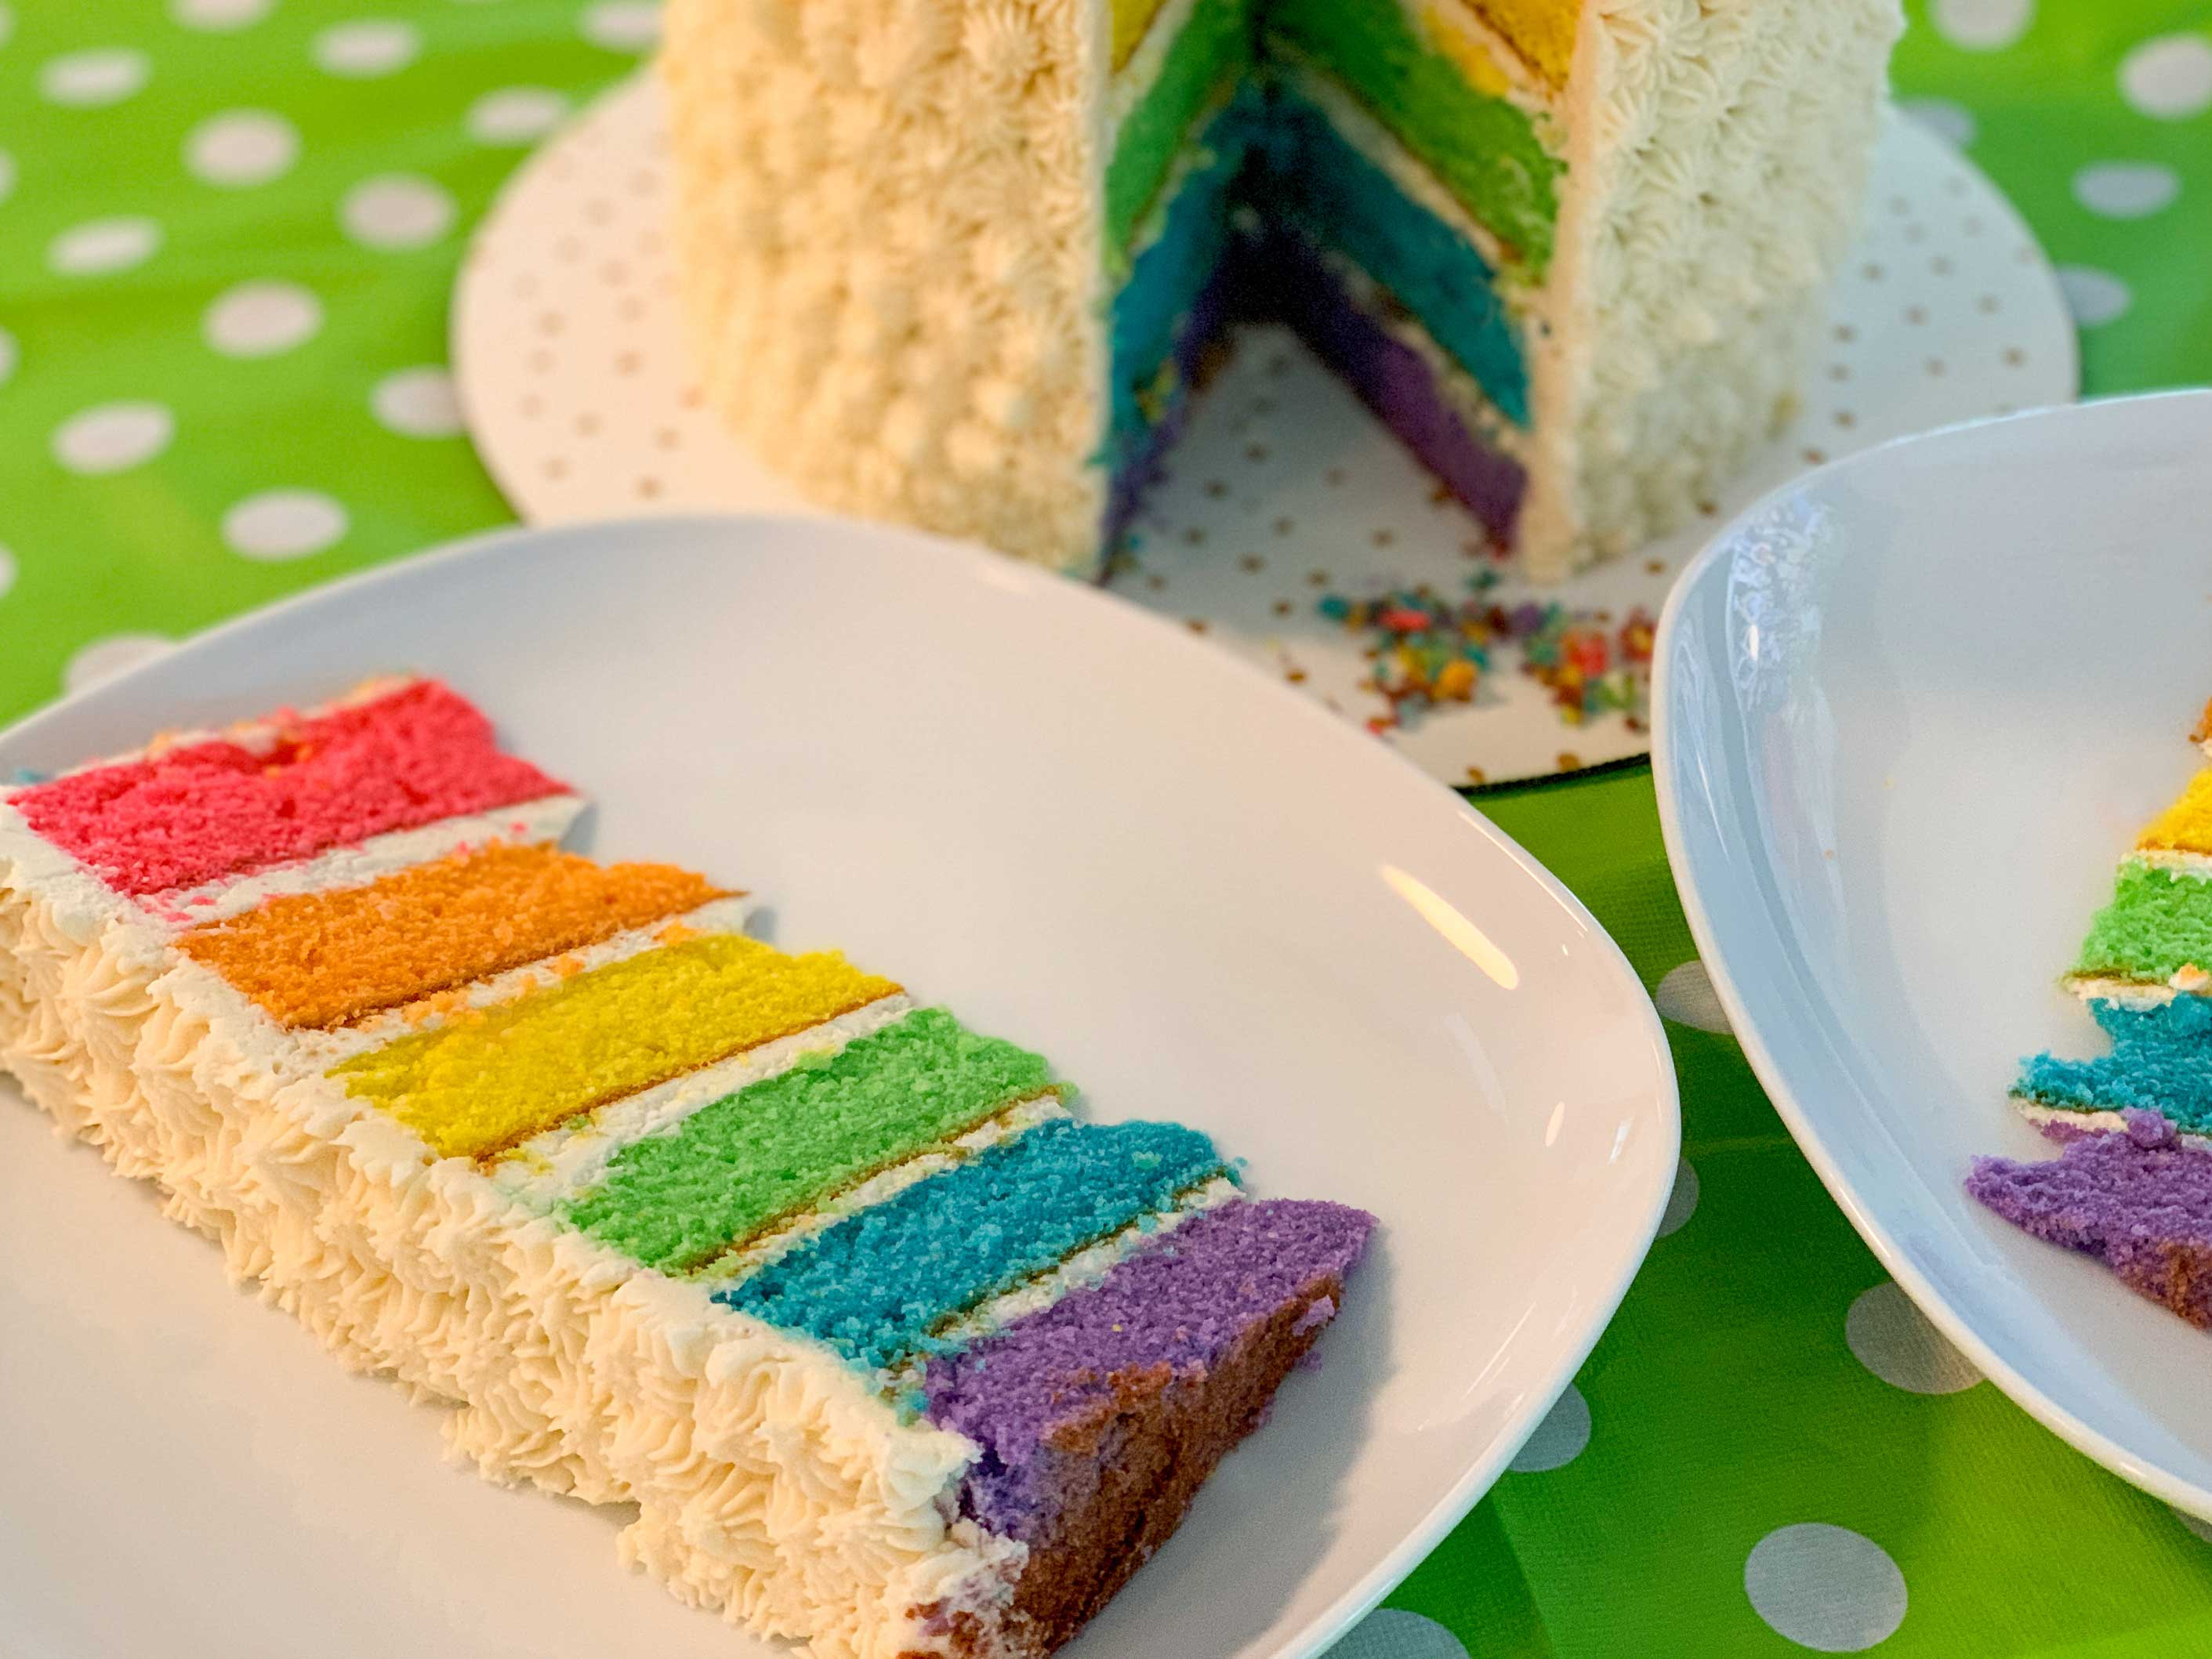 close up shot of a slice of the rainbow cake